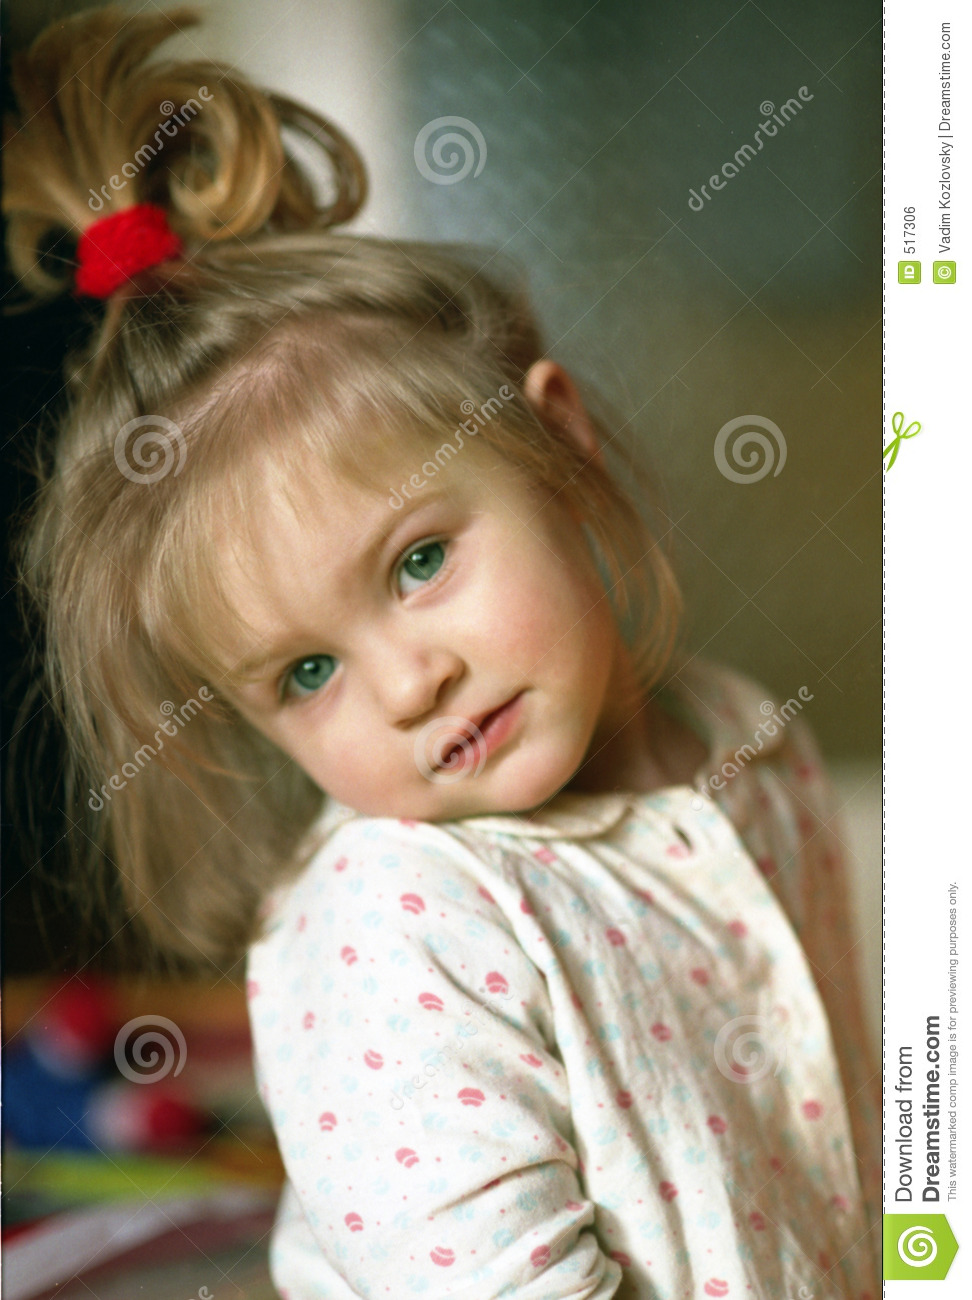 pretty girl royalty free stock image image 517306 free congratulations clipart for children free congratulations clip art for new job